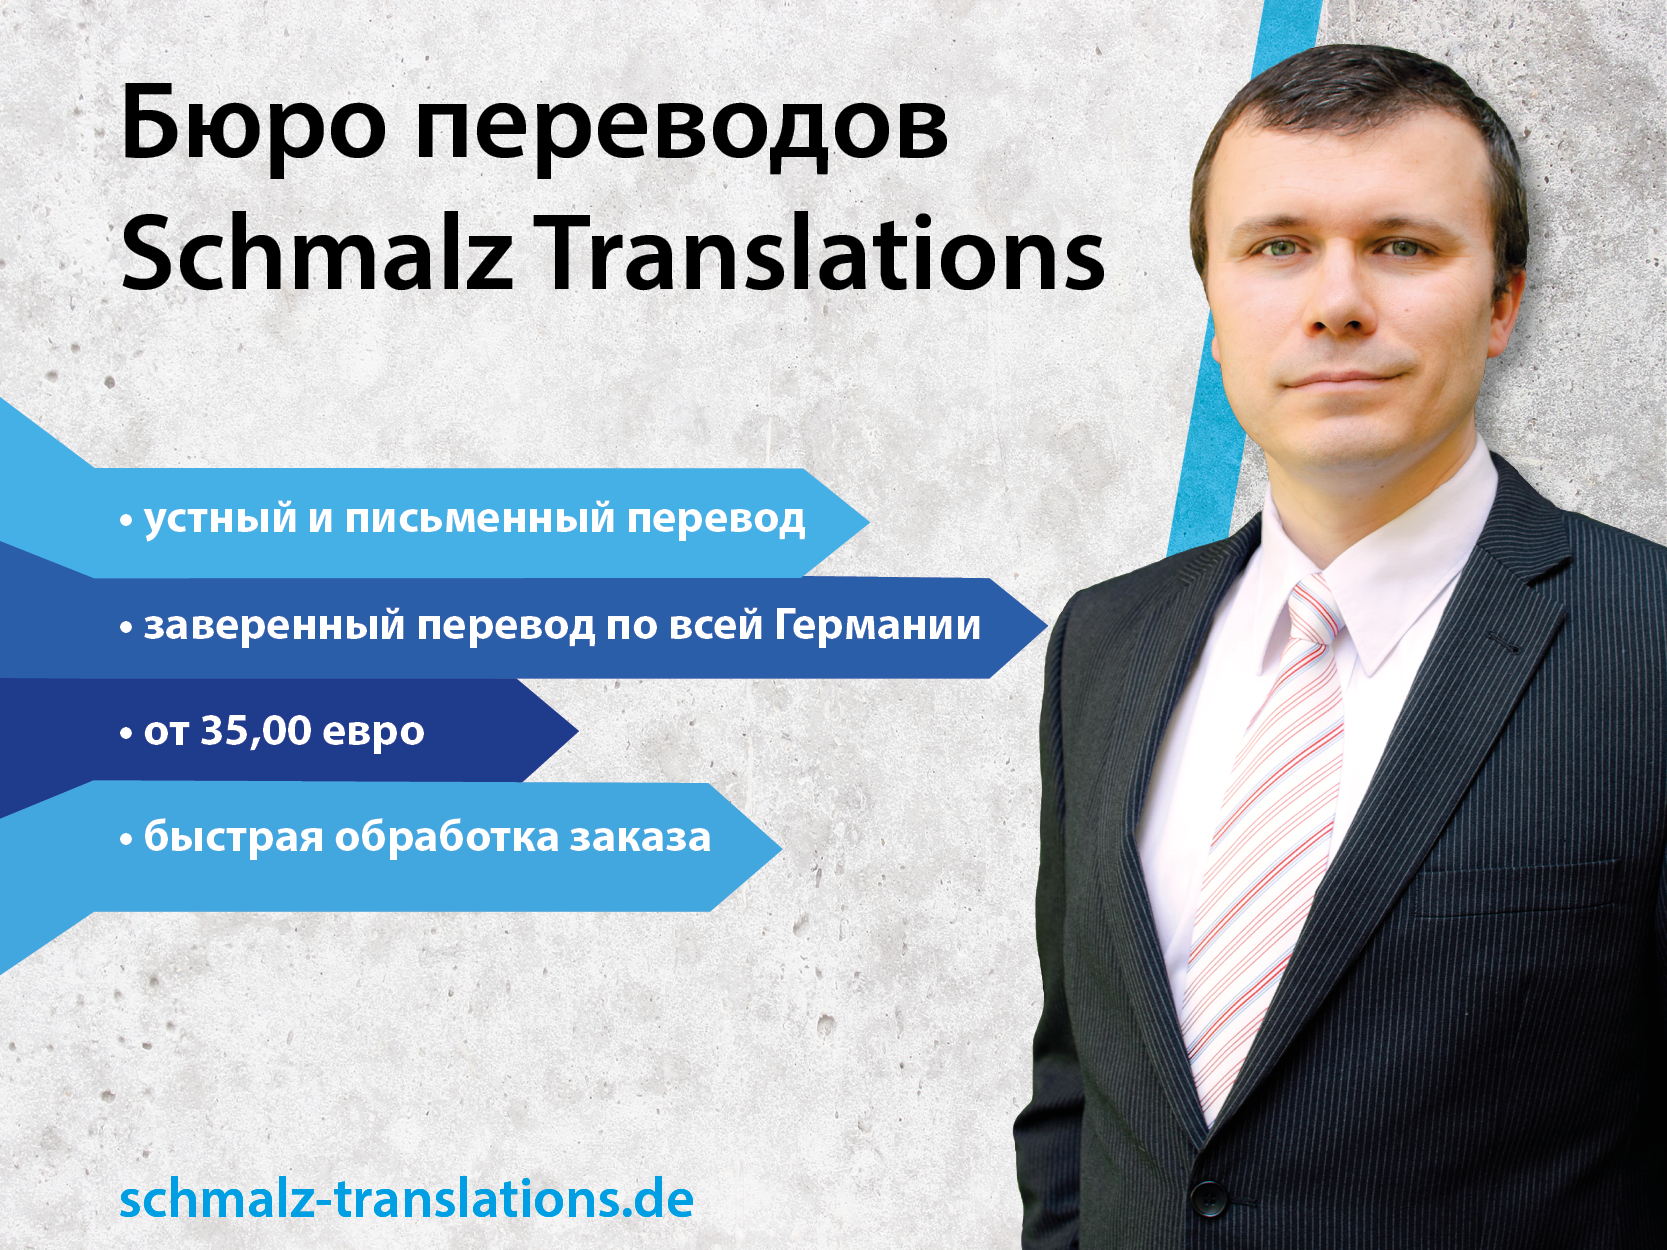 Денис Шмальц - Бюро переводов во Франкфурте на Майне -  Schmalz Translations